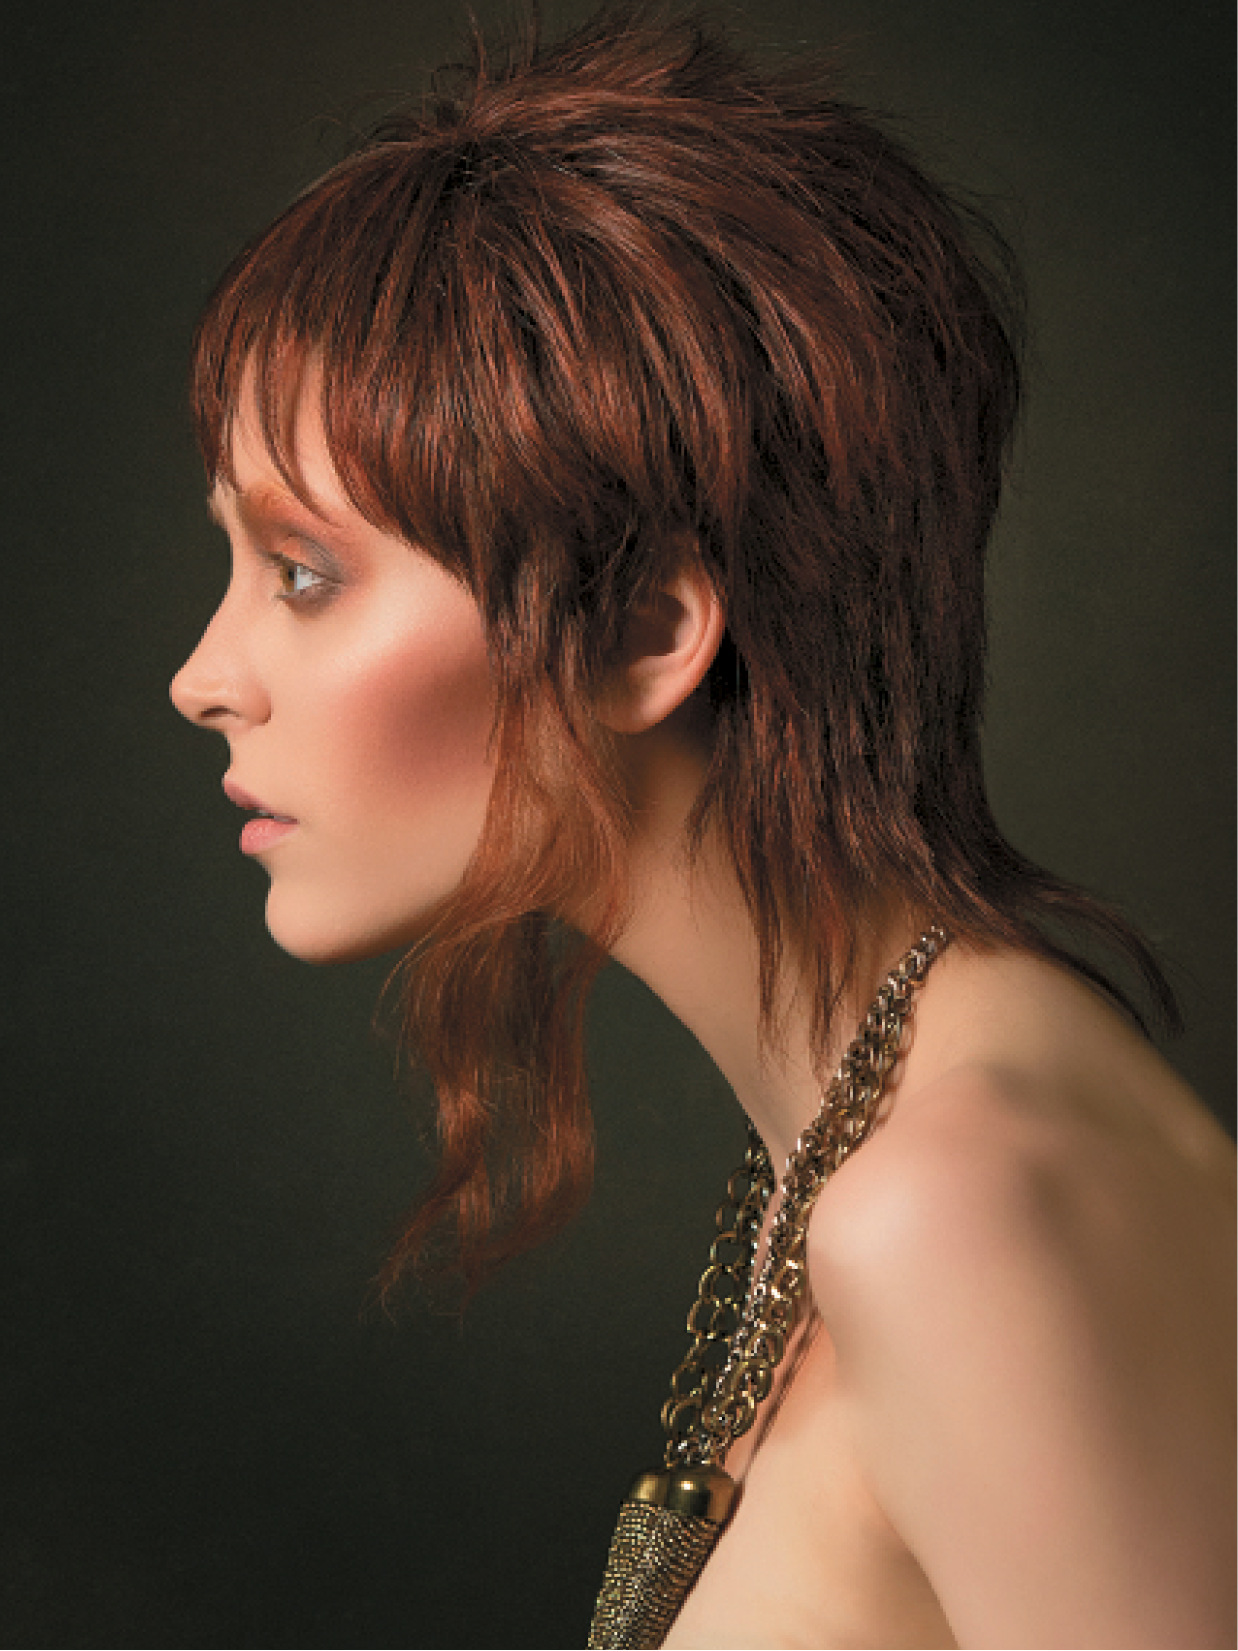 For this style of different lengths, Whitmarsh cut a classic graduated pixie, leaving out the perimeter in the nape and in front of the ears. Next, she cut those sections to the desired length, and used a channeling technique to collapse the shape. For the finishing touch, Whitmarsh wet strands and scrunched long pieces in front of the ears, and let air dry.